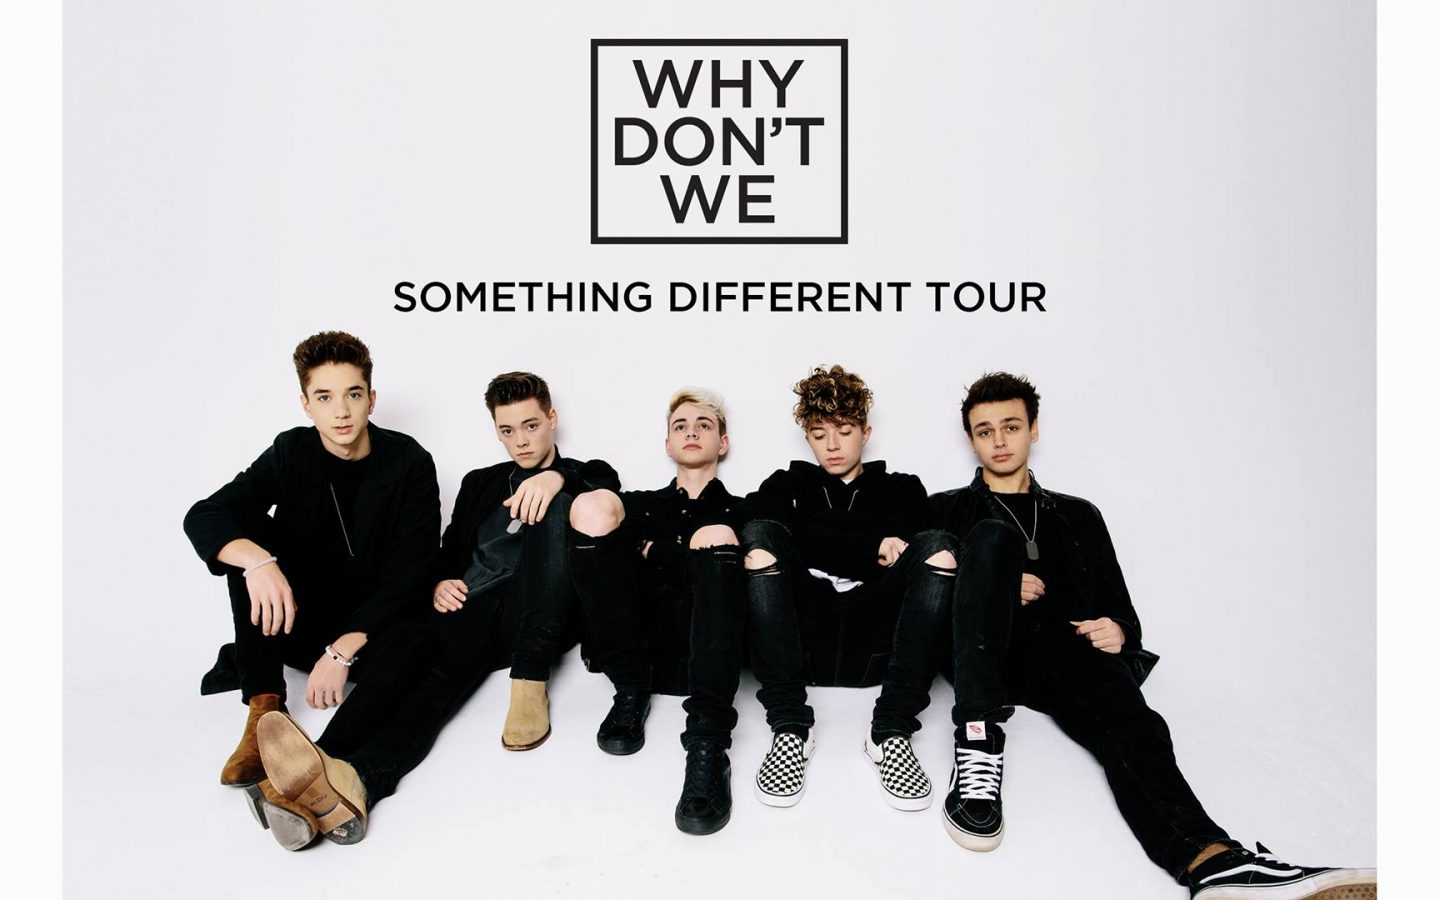 why dont we band images | HD Wallpapers , HD Backgrounds,Tumblr Backgrounds, Images, Pictures